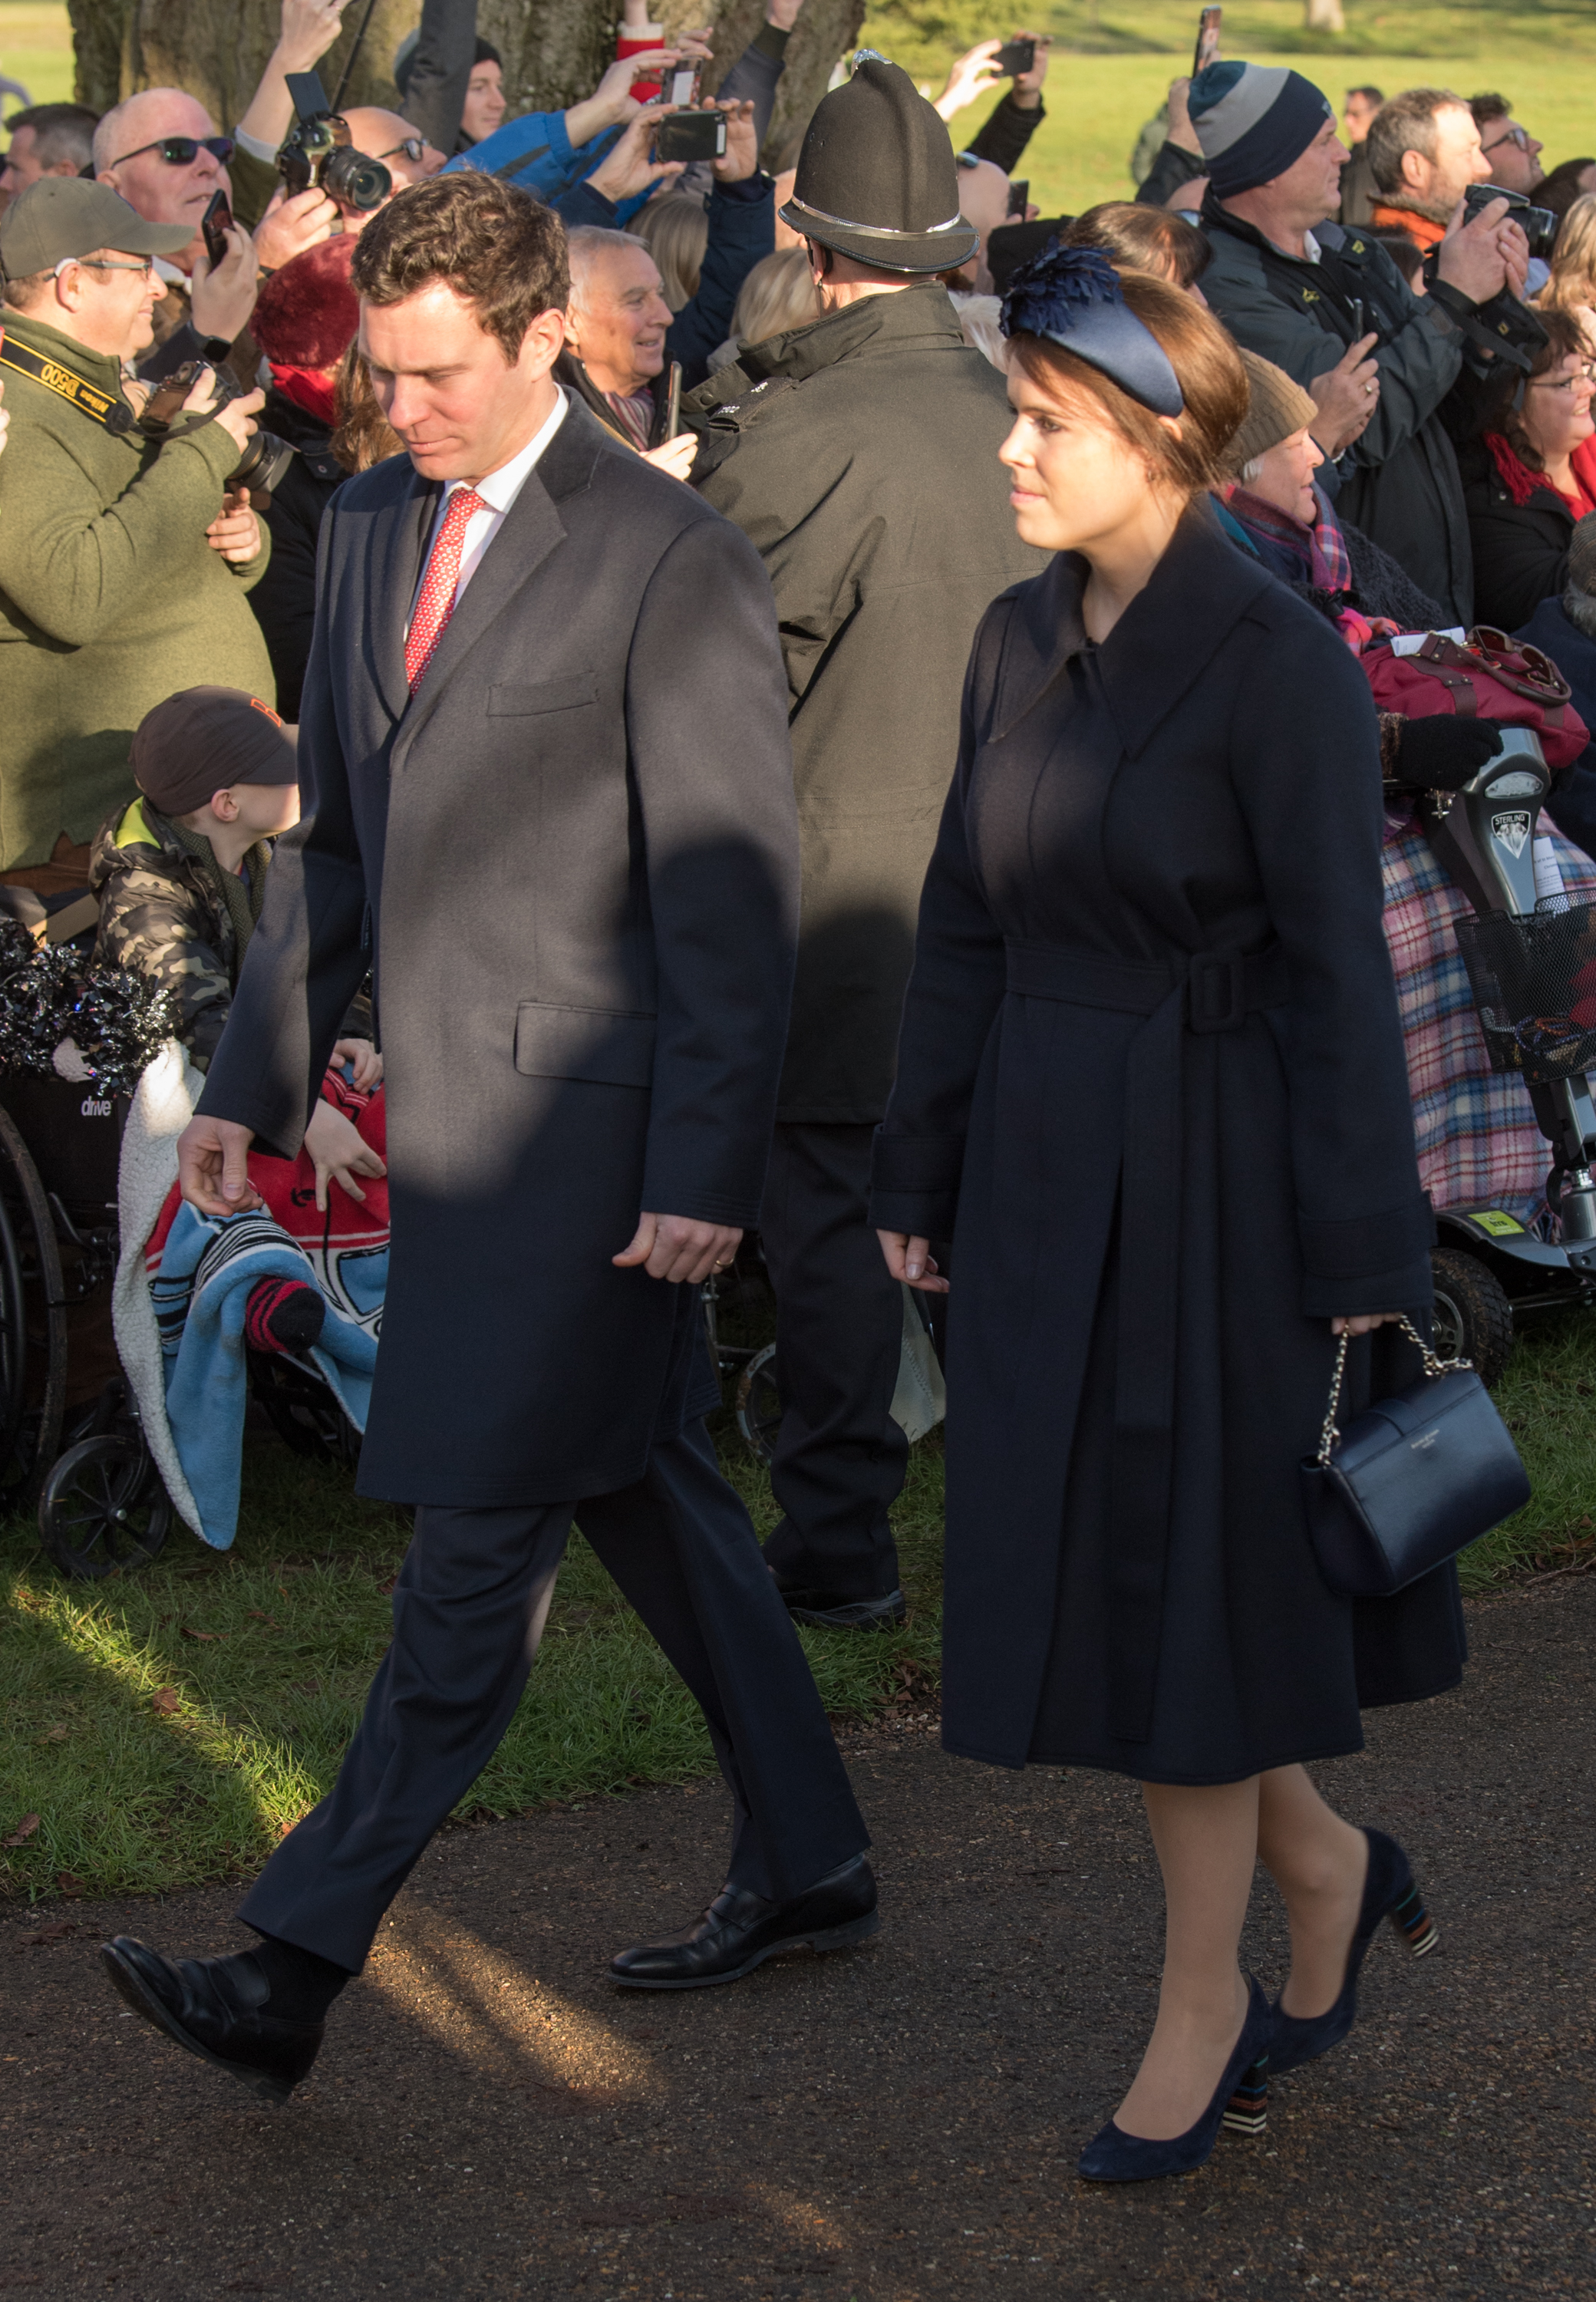 KING'S LYNN, ENGLAND - DECEMBER 25: Princess Eugenie and Jack Brooksbank  attend the Christmas Day Church service at Church of St Mary Magdalene on the Sandringham estate on December 25, 2019 in King's Lynn, United Kingdom. (Photo by Pool/Samir Hussein/WireImage)